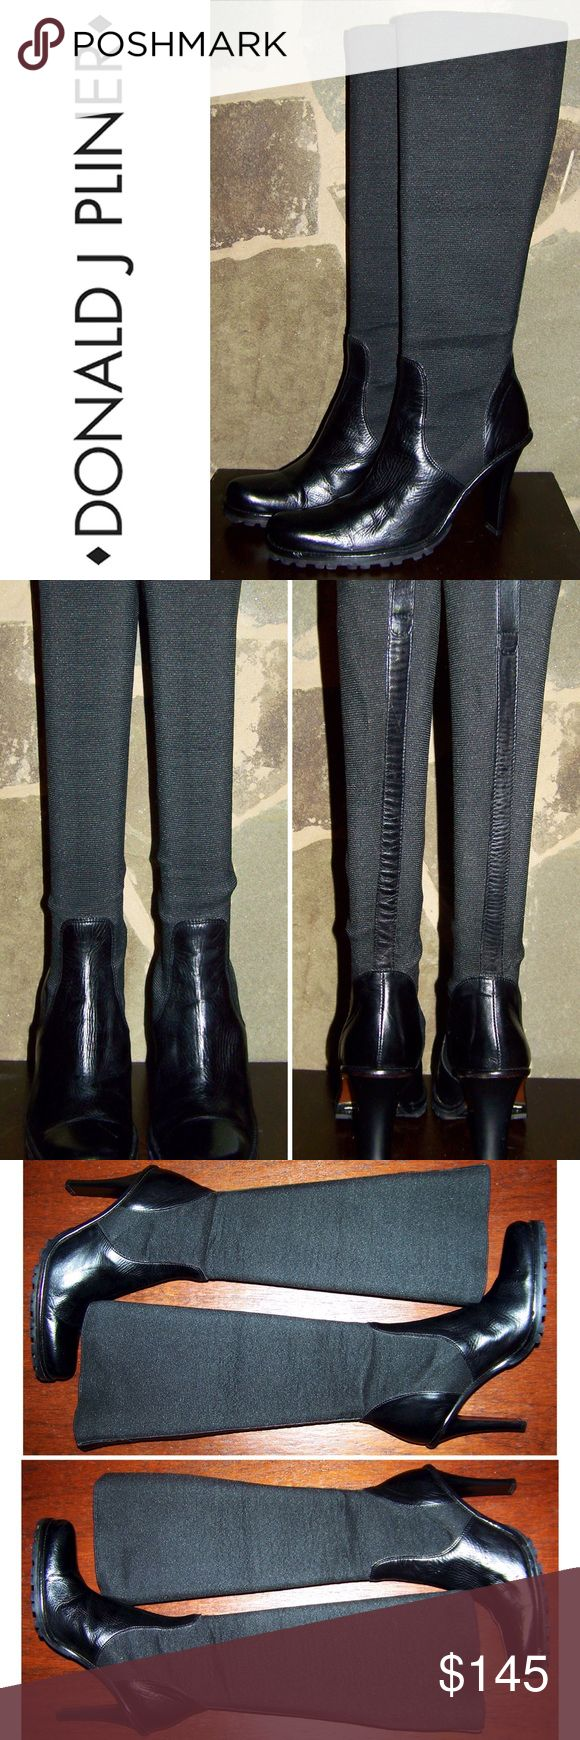 """Donald Pliner Black Leather Knee High Stretch Boot Donald J Pliner black leather elastic stretch knee high boots size 6. Great condition may be a bit of stretching in the elastic, some creasing in toe upper, please see photos. Heel height is 4"""".Clean and ready to wear.   f454 Donald J. Pliner Shoes Heeled Boots"""